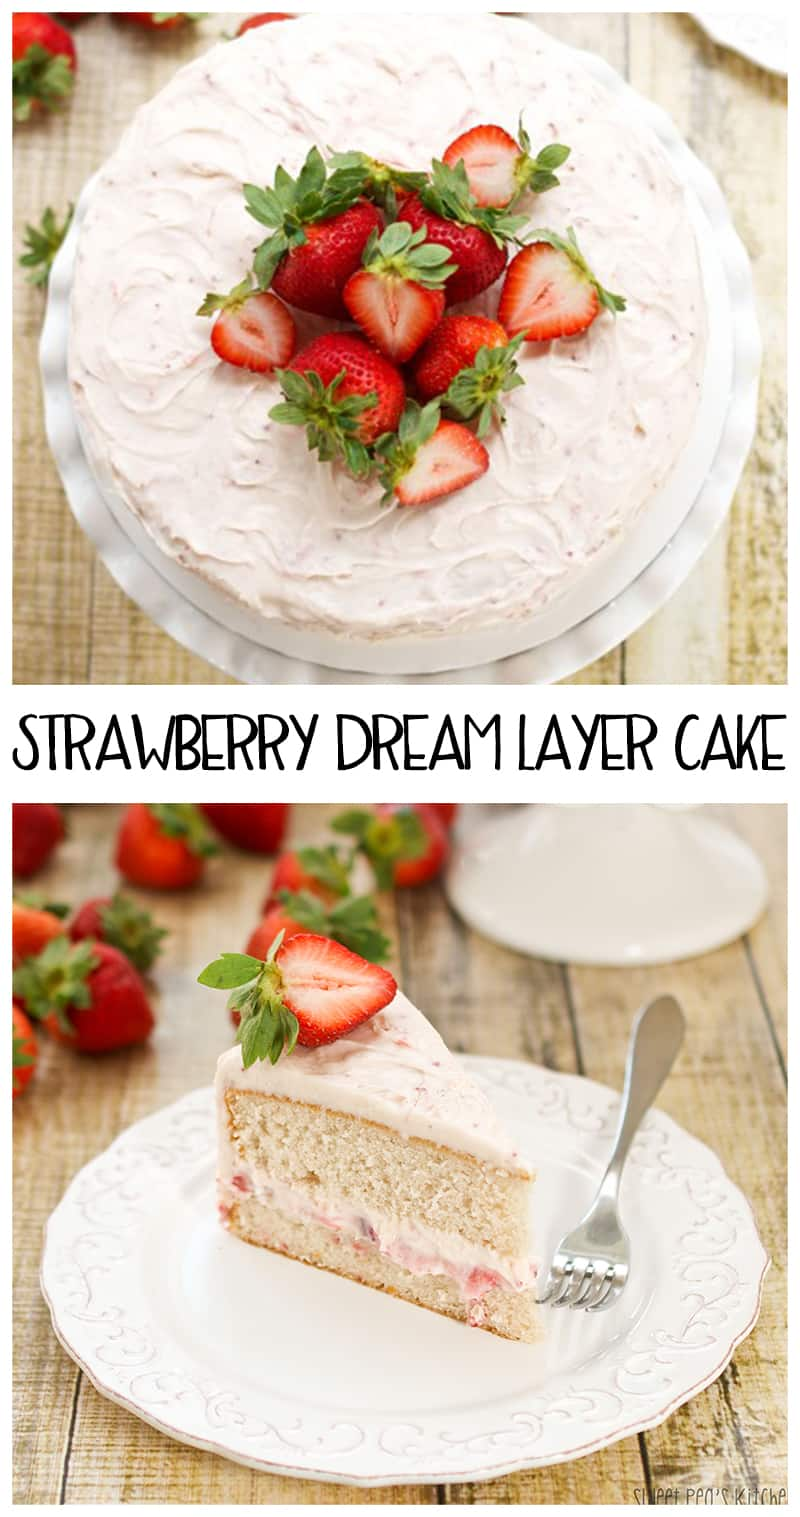 Strawberry Dream Layer Cake